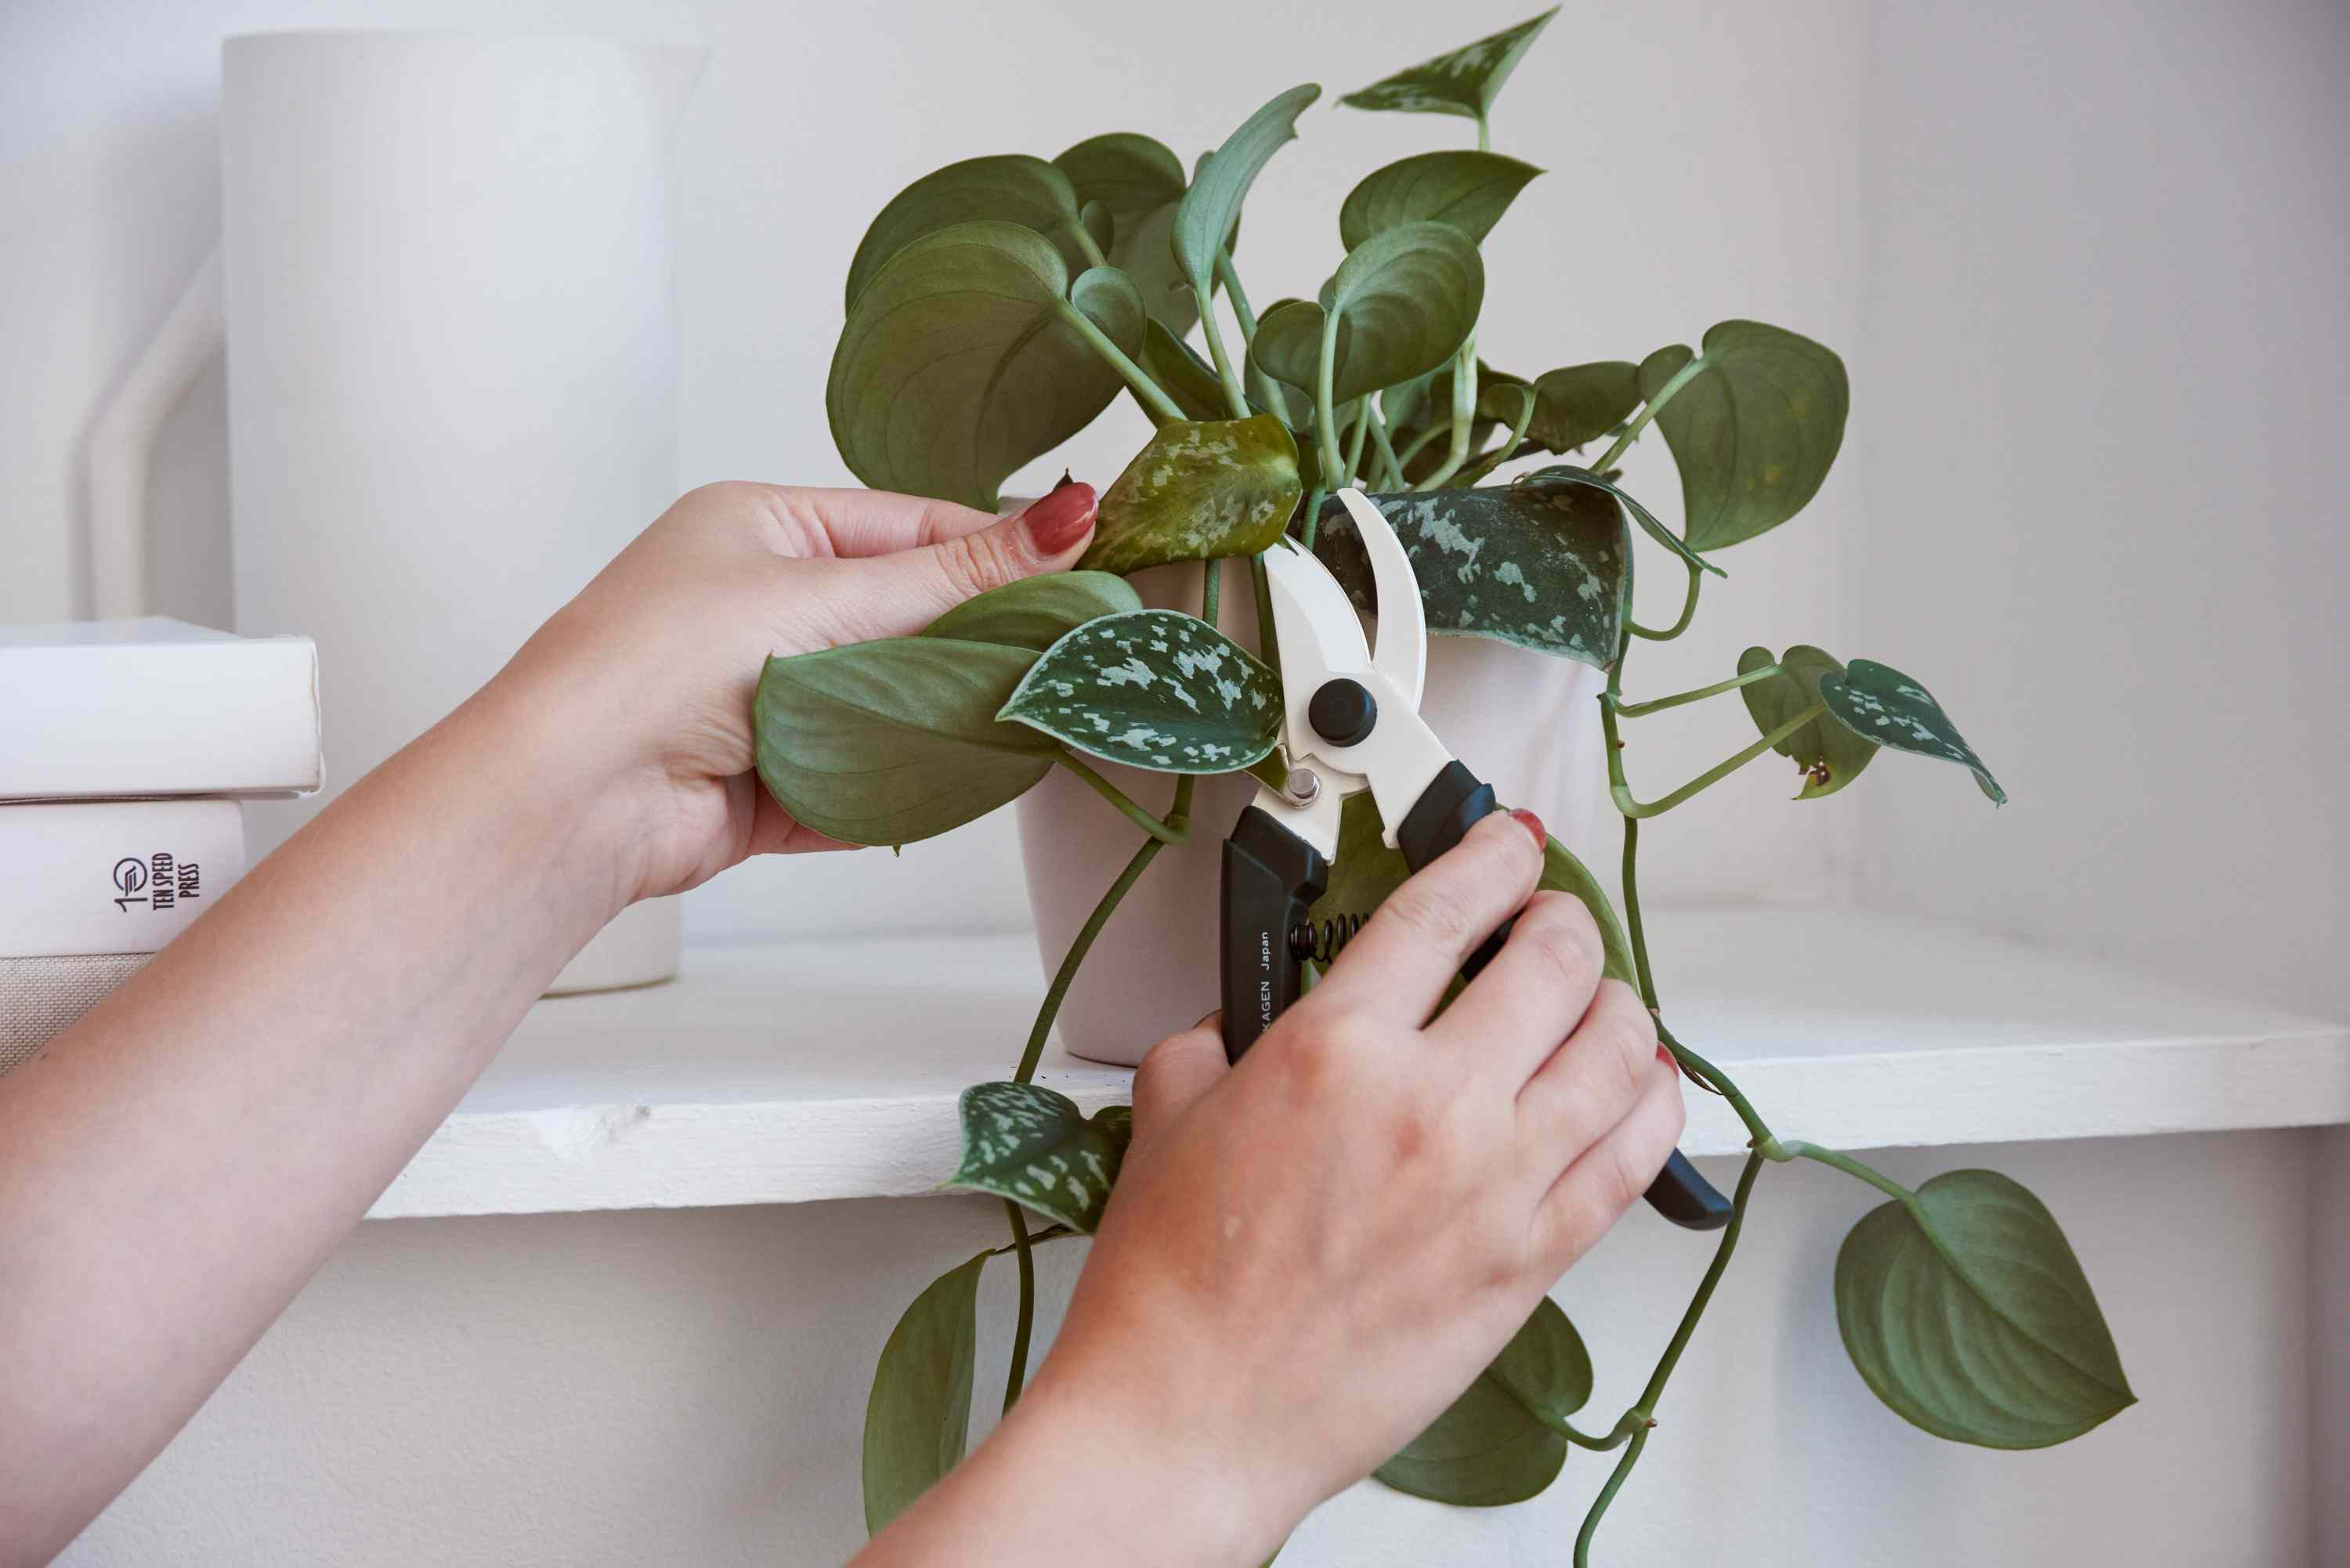 removing a dead leaf from a houseplant